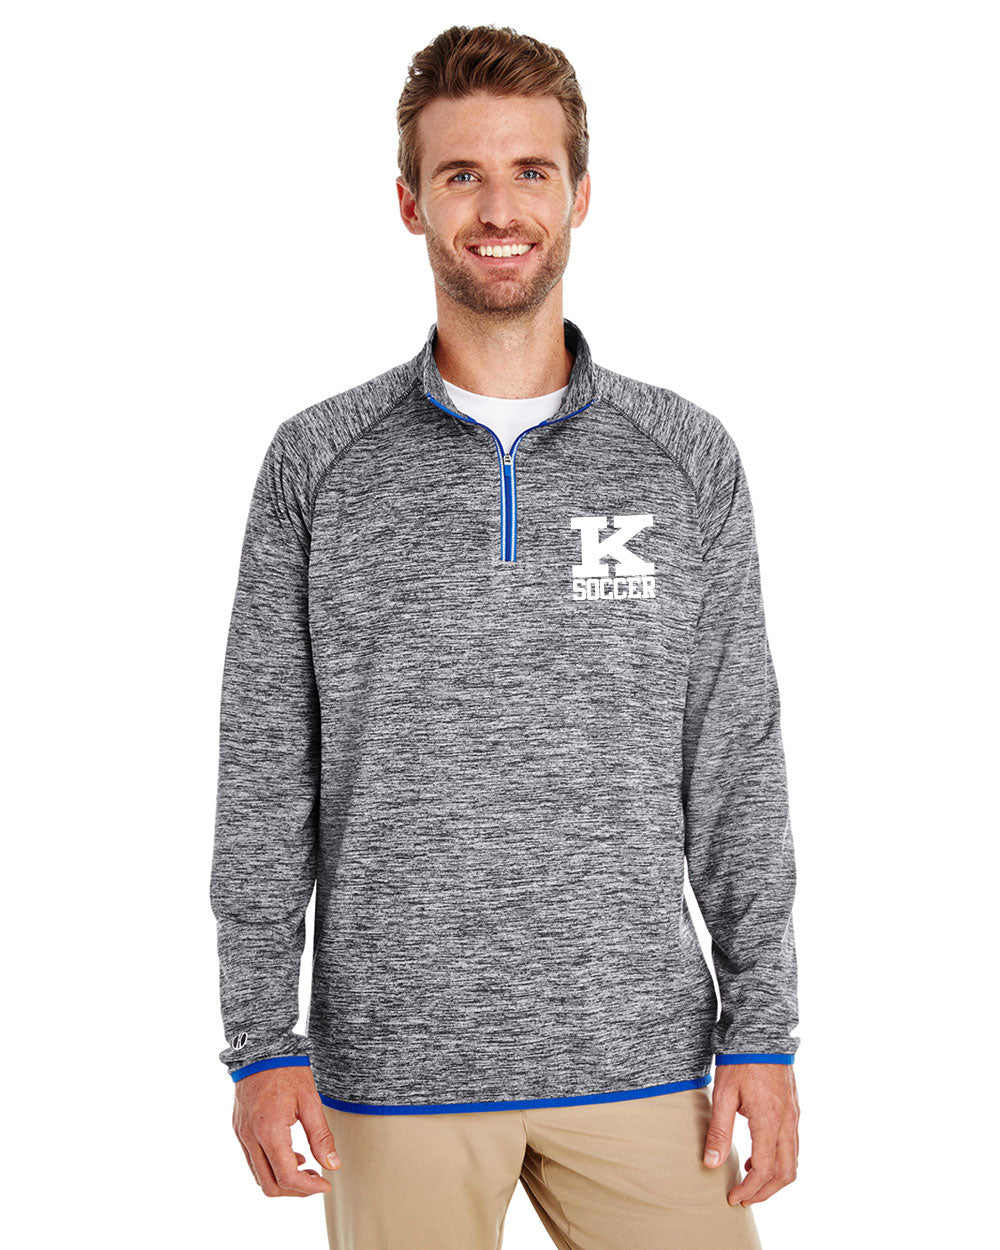 Men's 1/4 Zip Training Top